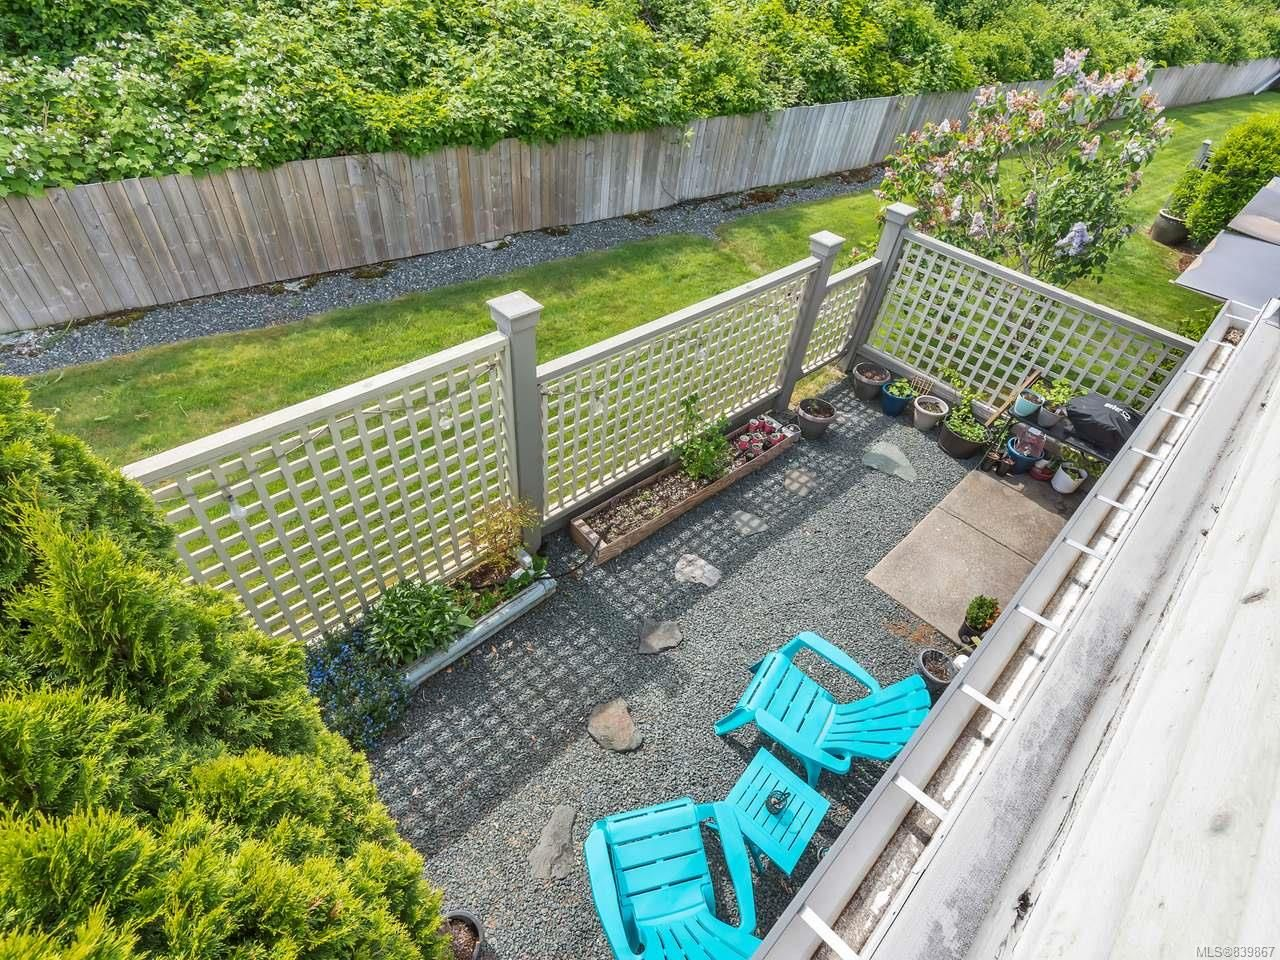 Photo 4: Photos: 21 2750 Denman St in CAMPBELL RIVER: CR Willow Point Row/Townhouse for sale (Campbell River)  : MLS®# 839867